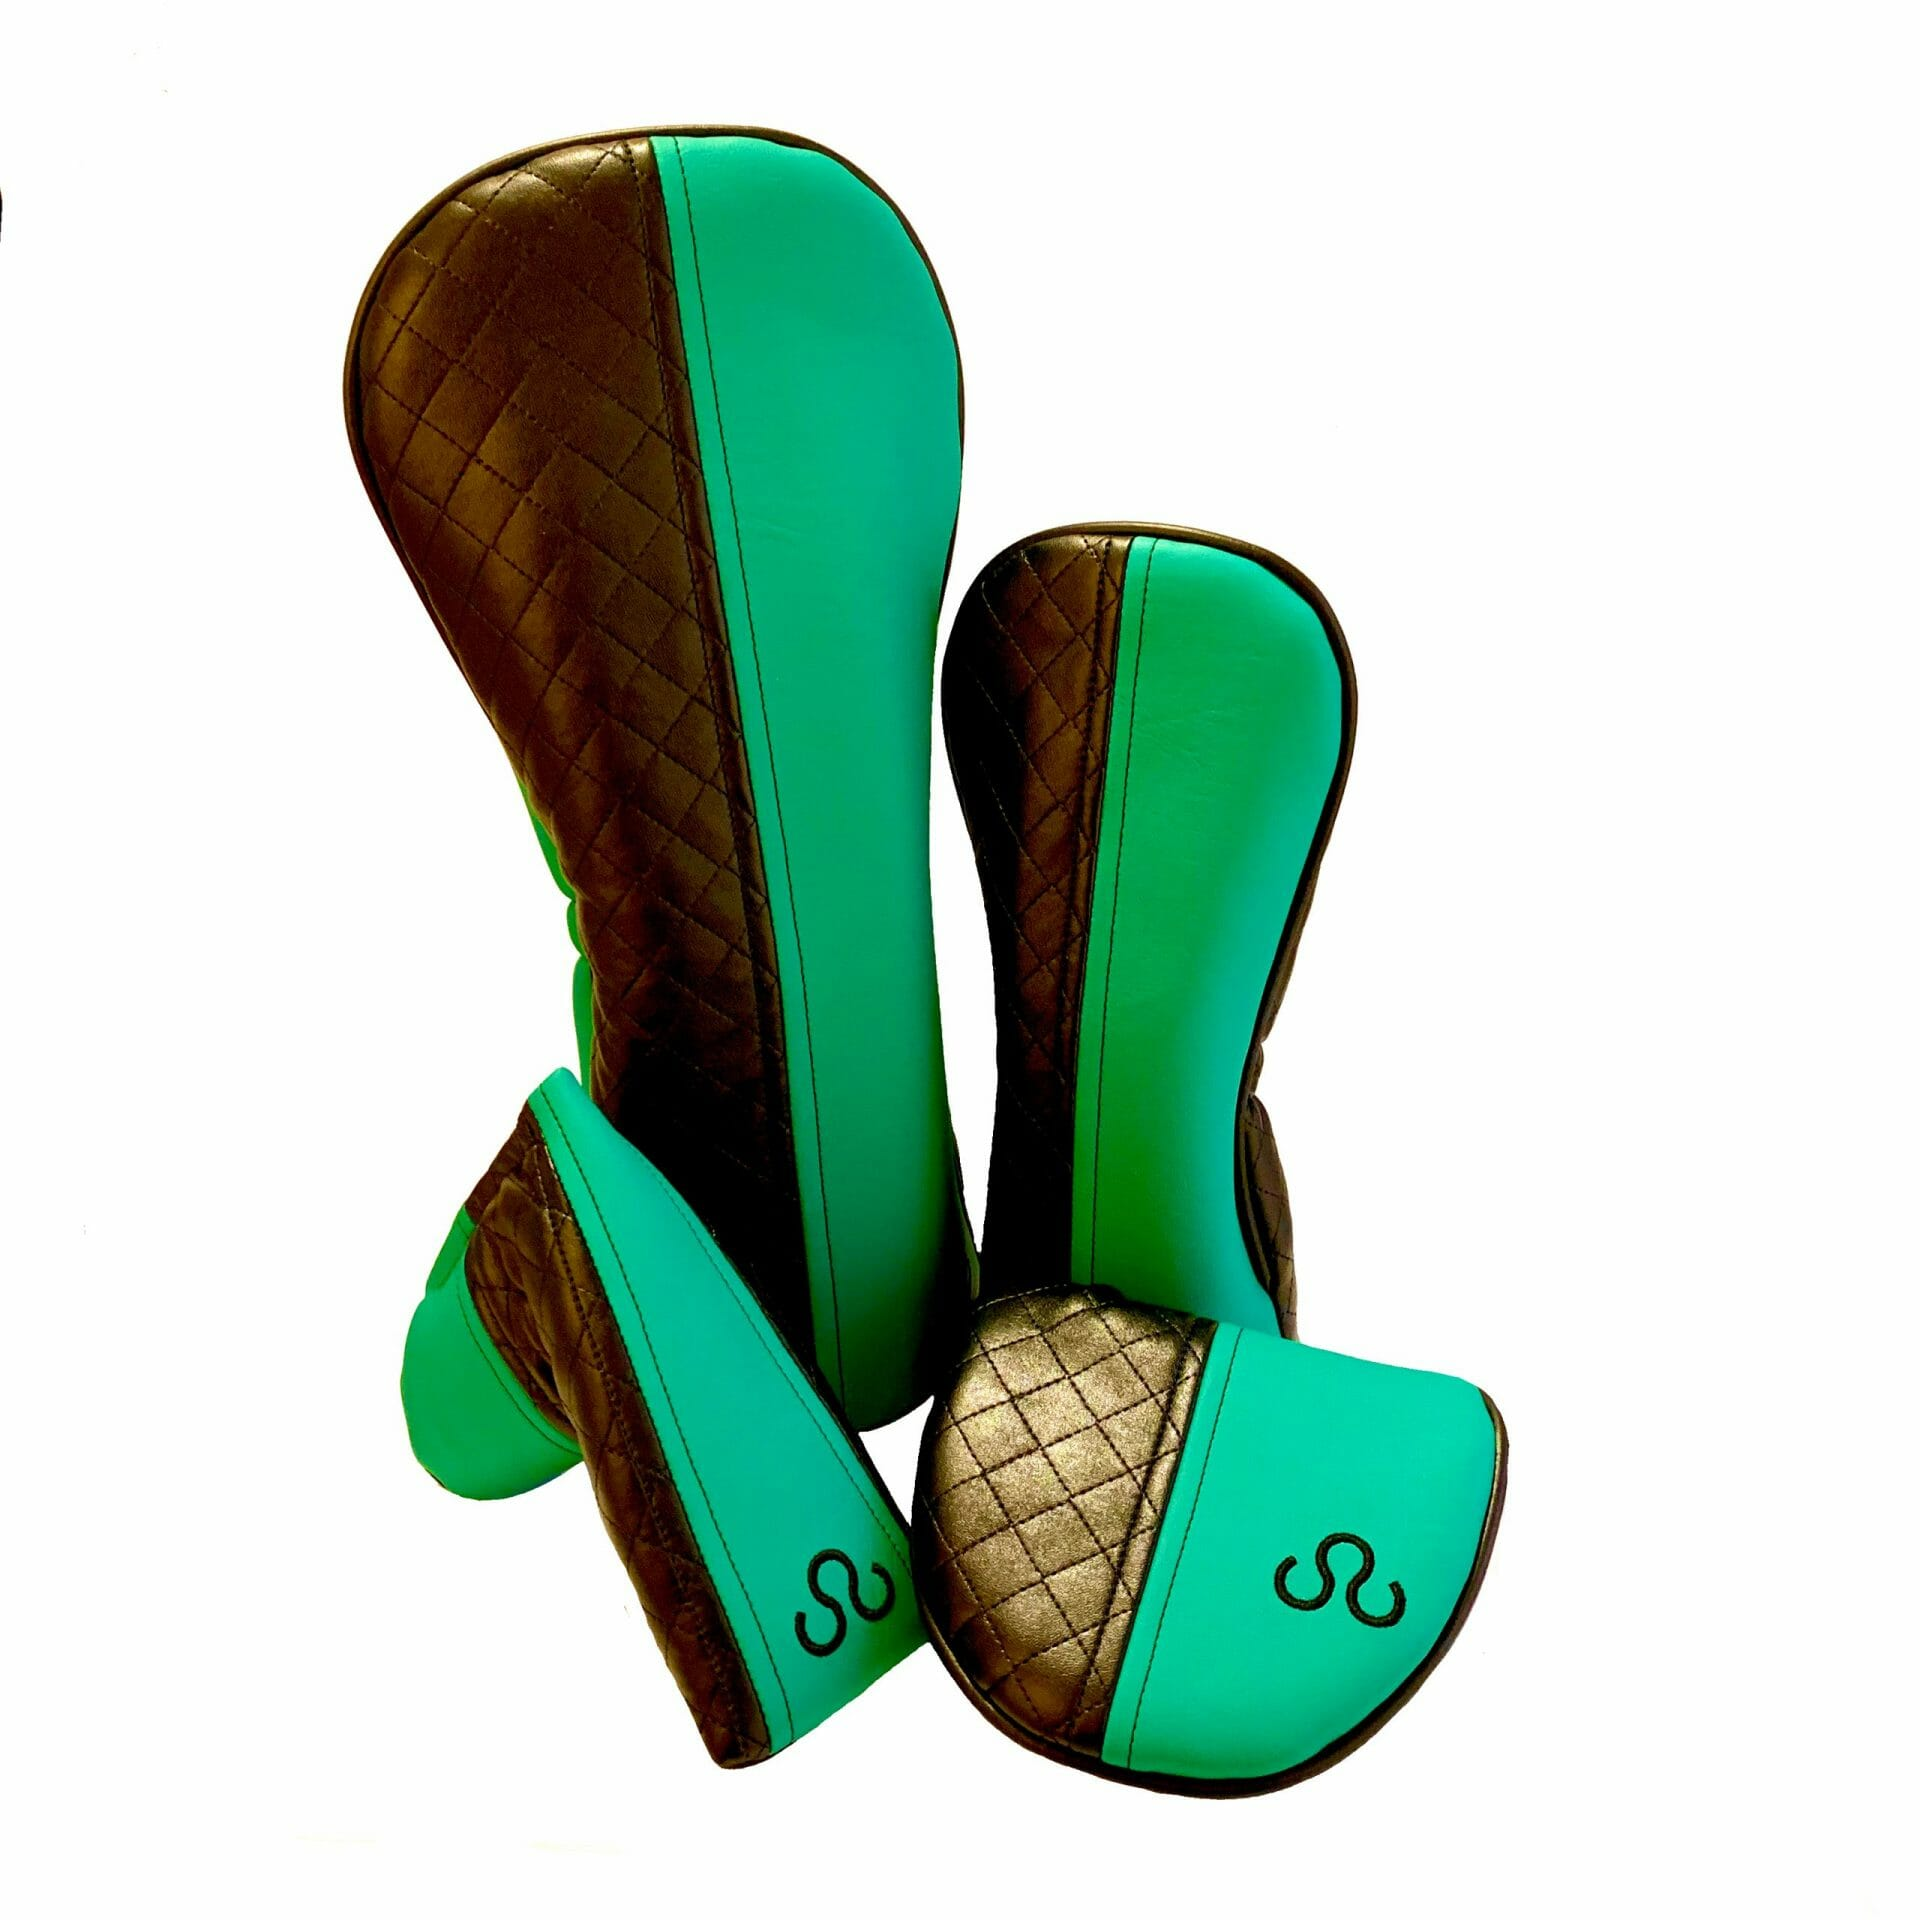 golf-shop-putter-wood-covers-online-game-of-two-halves-teal-set-shop